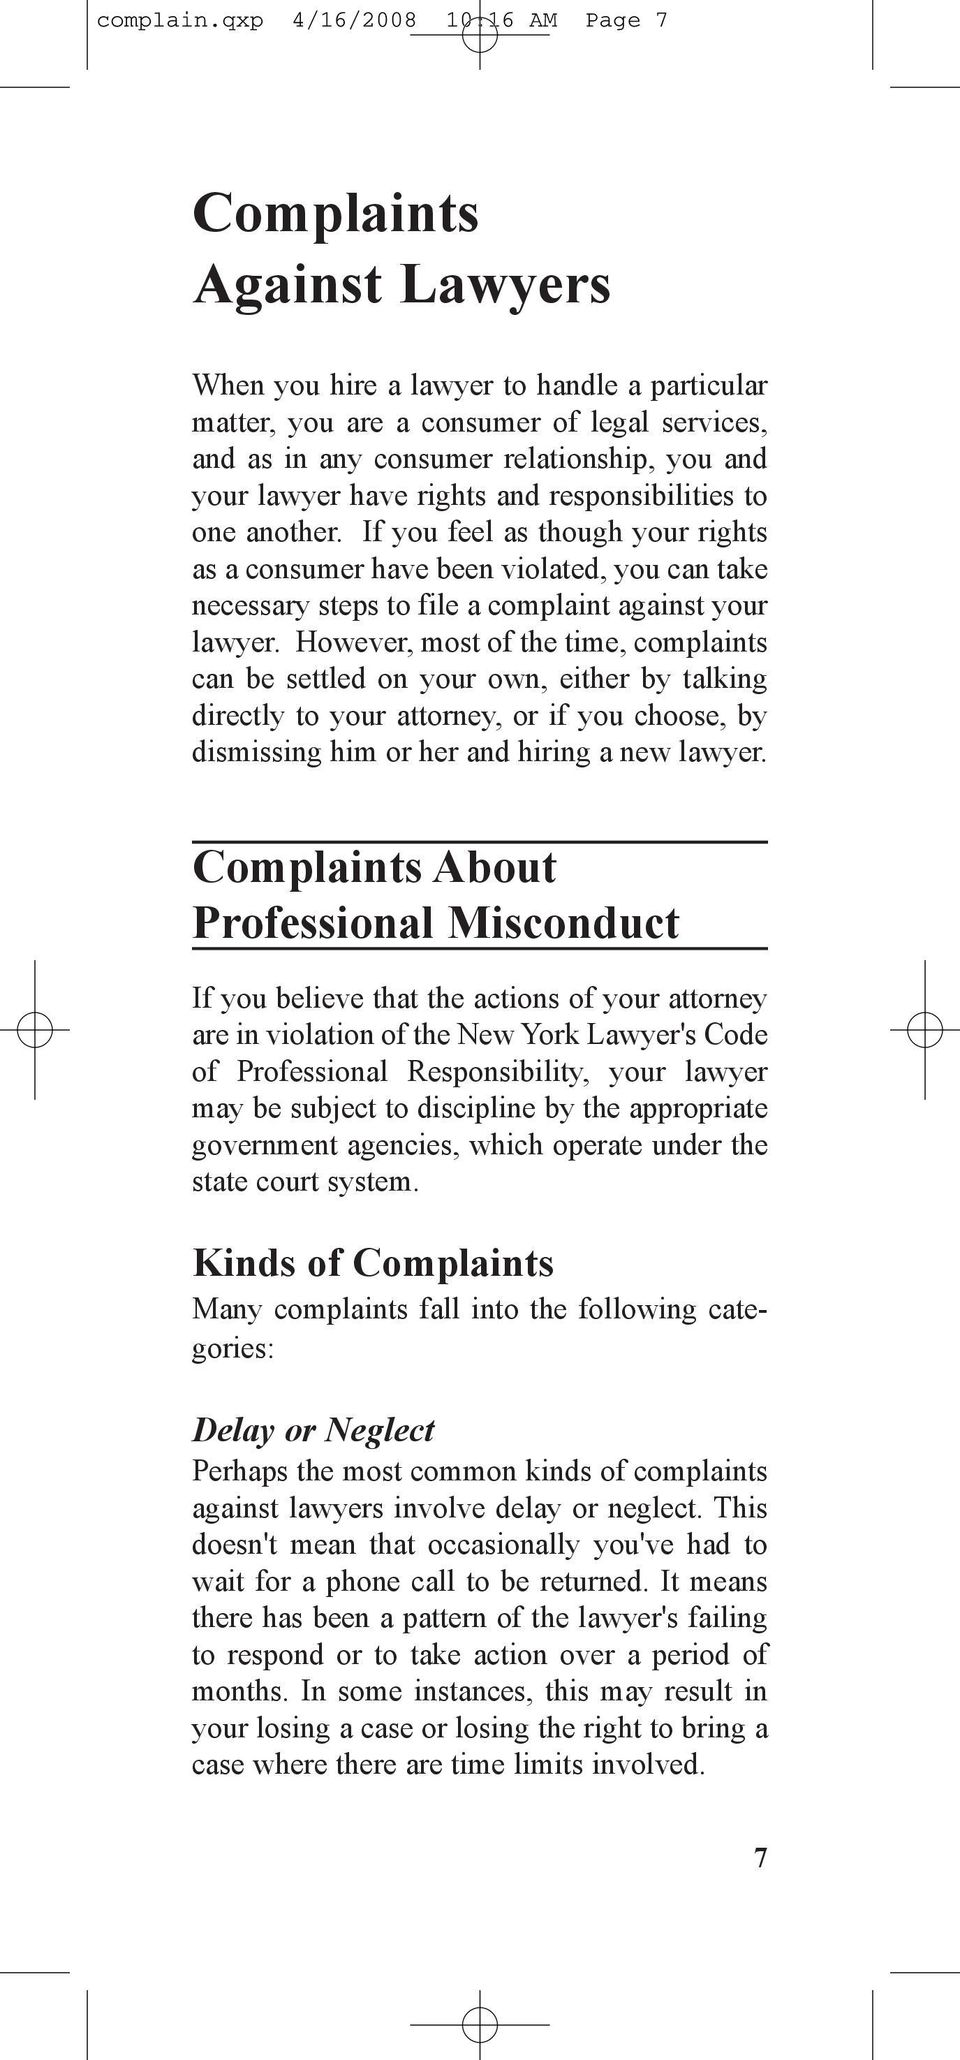 lawyer have rights and responsibilities to one another. If you feel as though your rights as a consumer have been violated, you can take necessary steps to file a complaint against your lawyer.